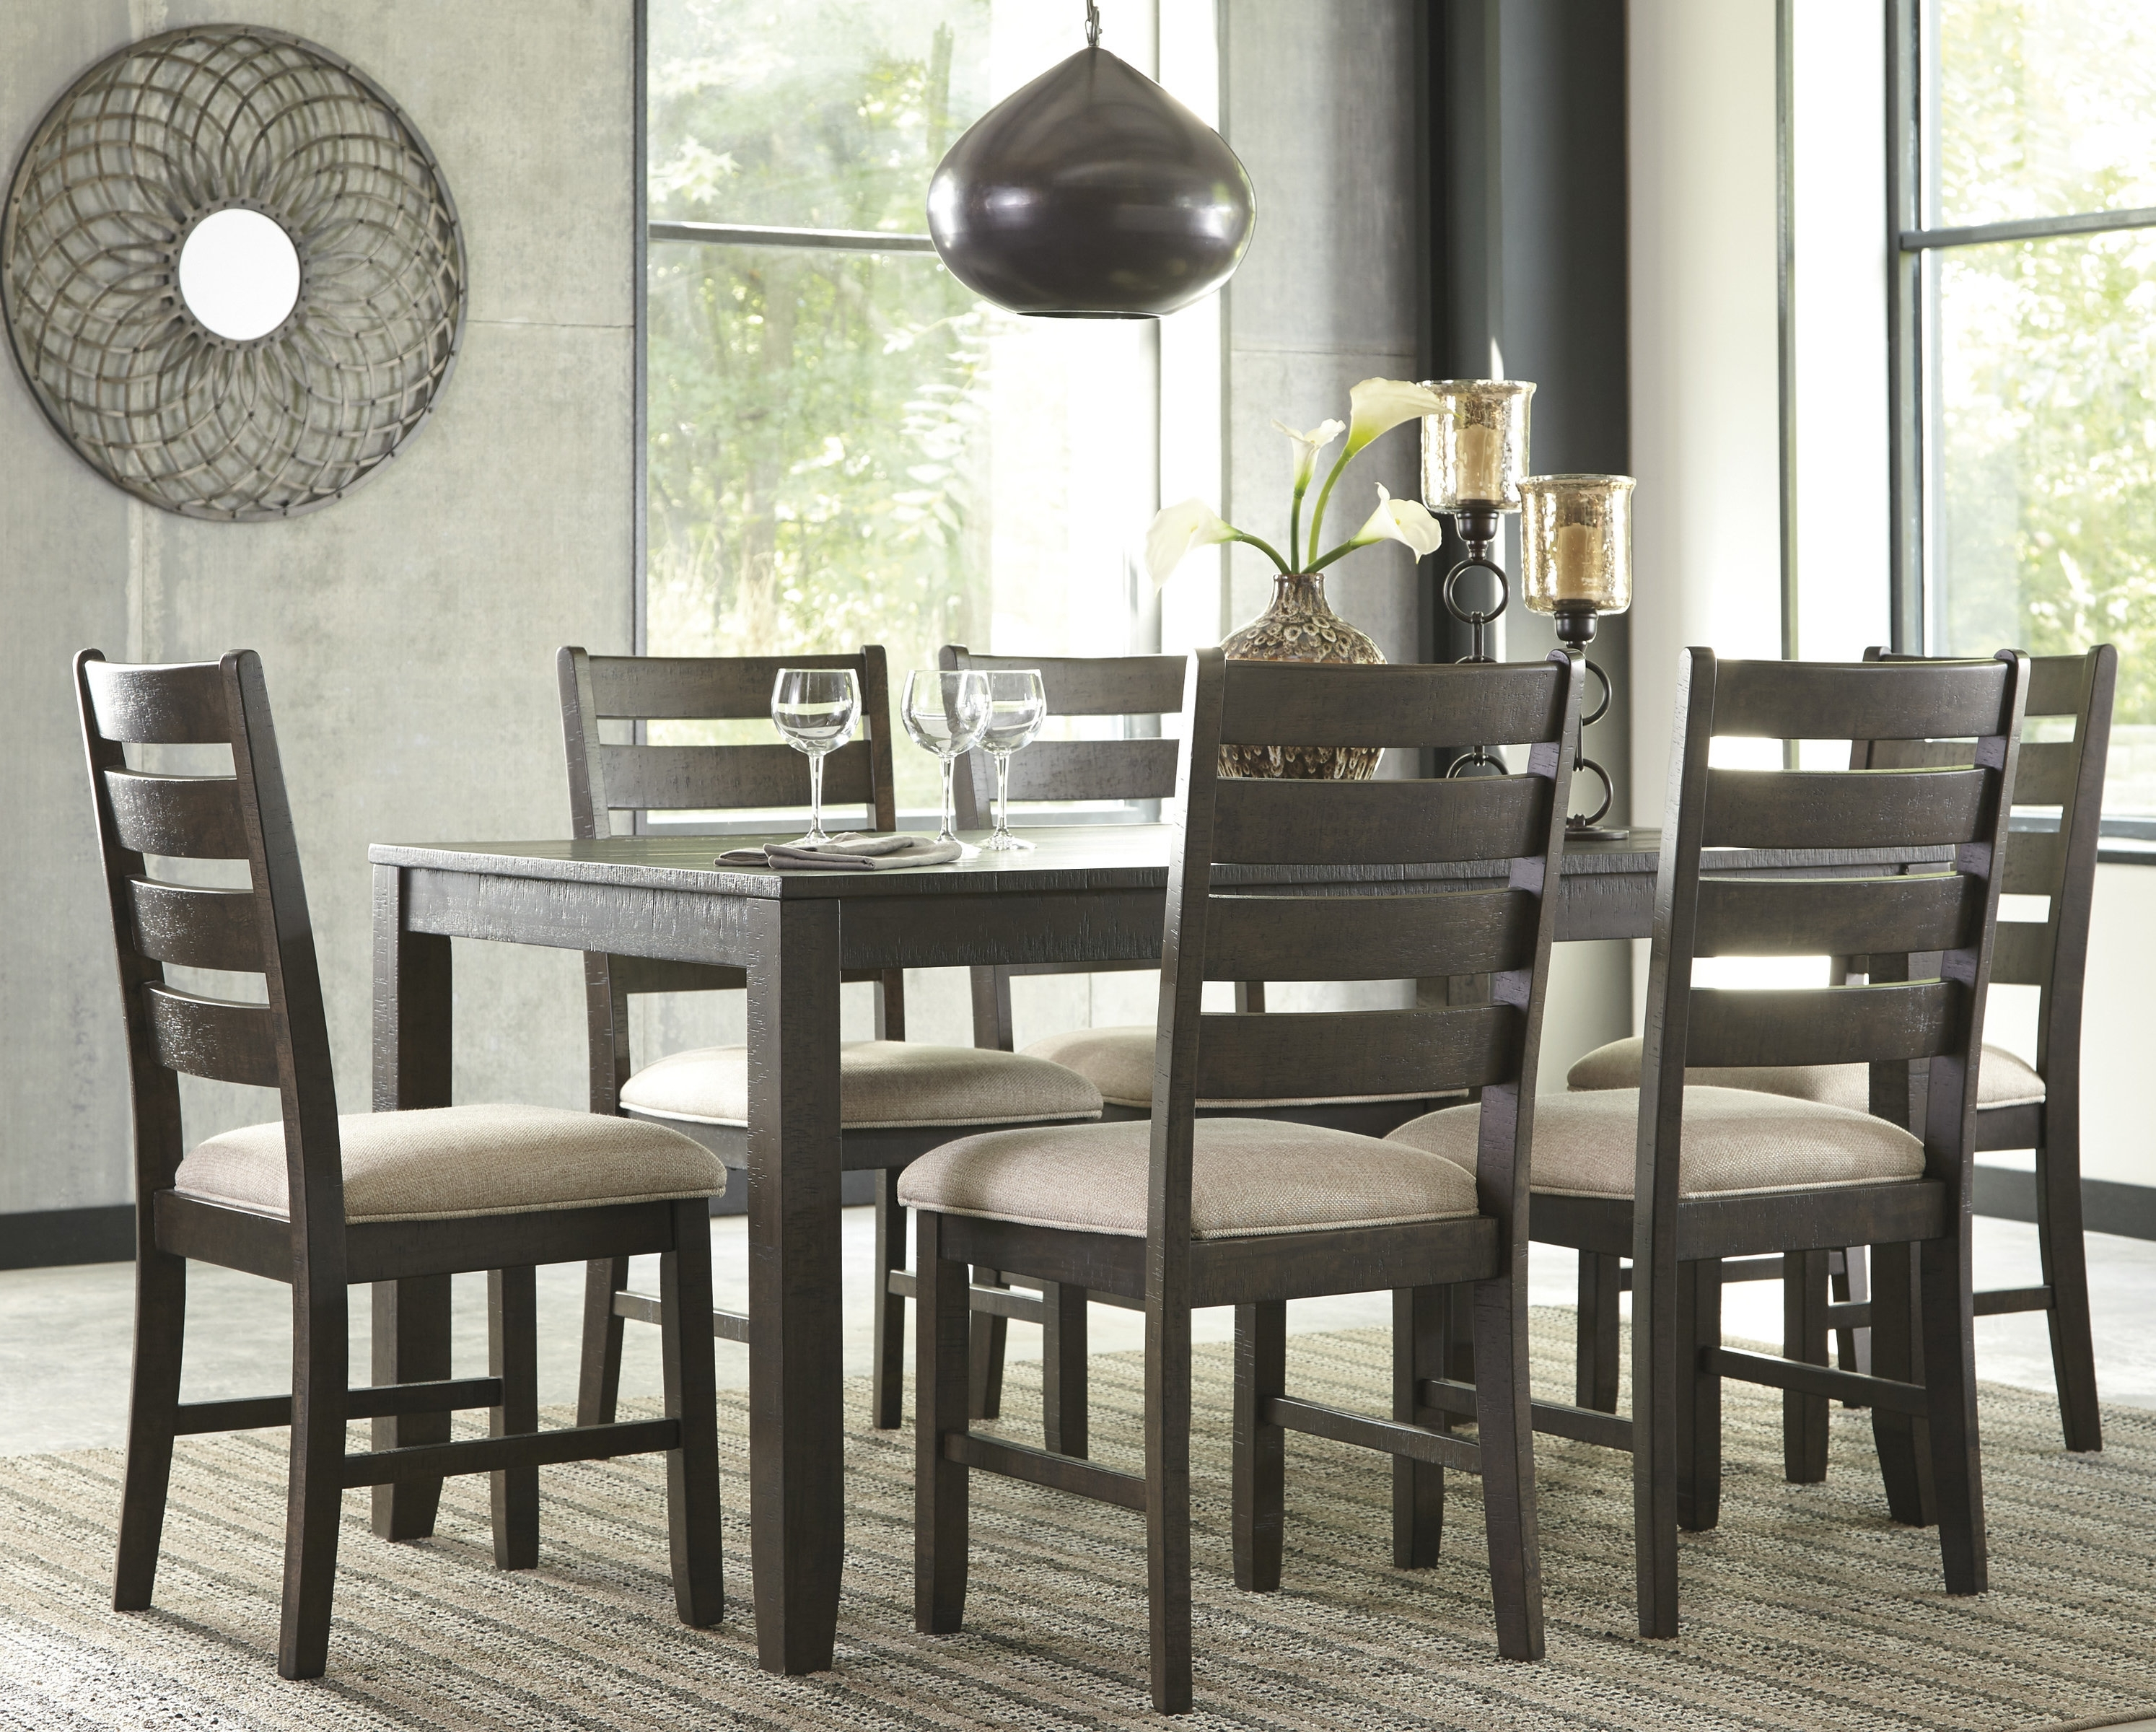 Choosing The Right 7 Piece Dining Set – Goodworksfurniture For Recent Partridge 7 Piece Dining Sets (Photo 5 of 20)